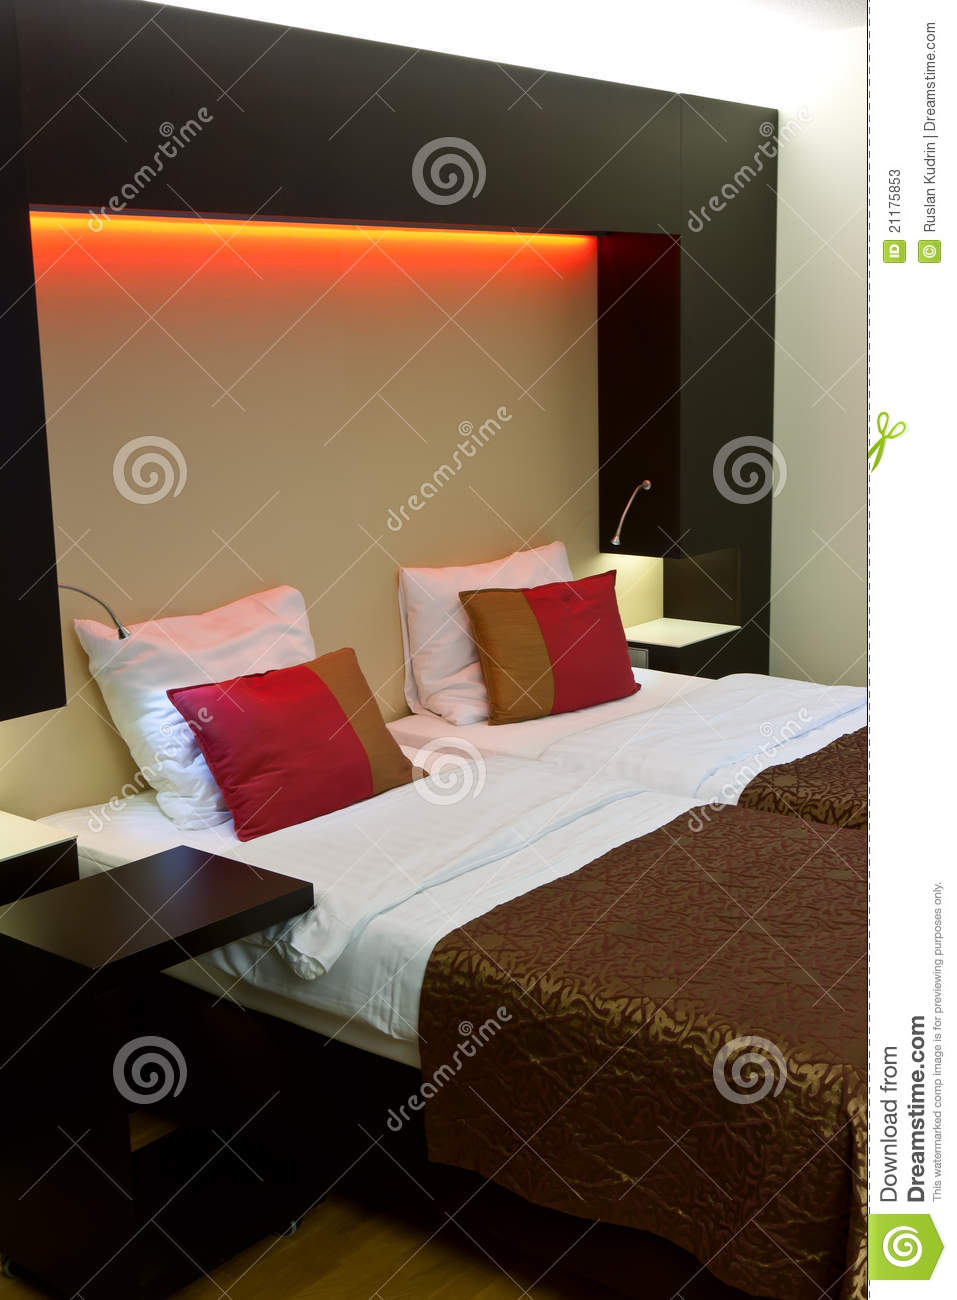 Bed in the hotel room